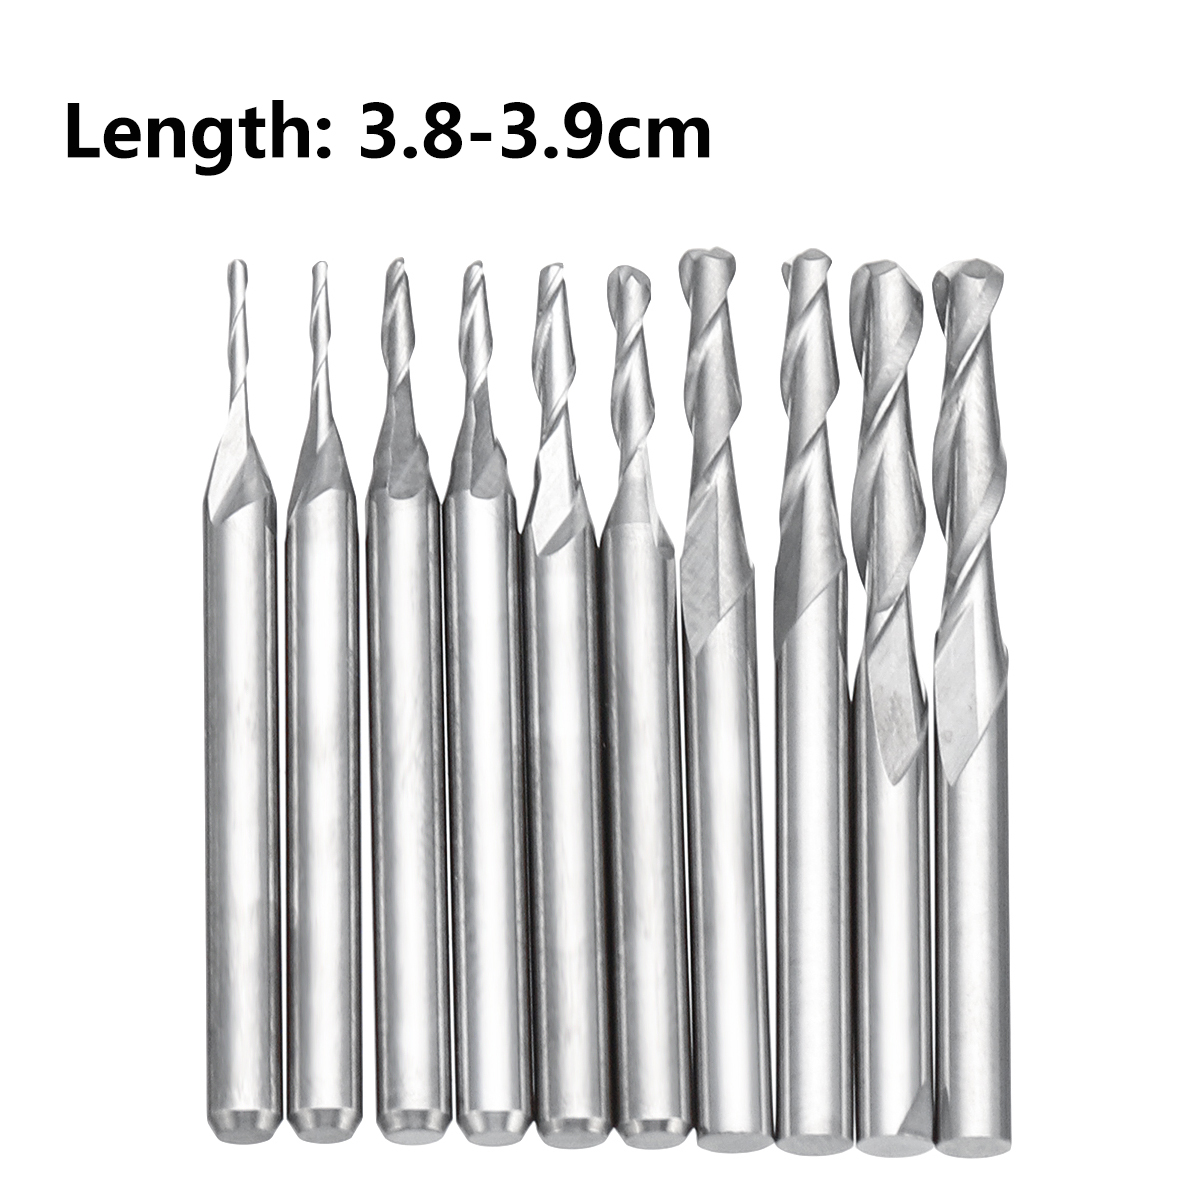 End Mill Set Shank Carbide Ball Nose 10pcs 2 Flutes 1/8 Inch CNC Cutting Tool Milling Cutter 1mm-3.175mm for Wood Working r0 4x0 8x6x4x50l 20pcs deep neck groove carbide ball nose end mill 2 flutes hrc55 with coating cnc milling cutter